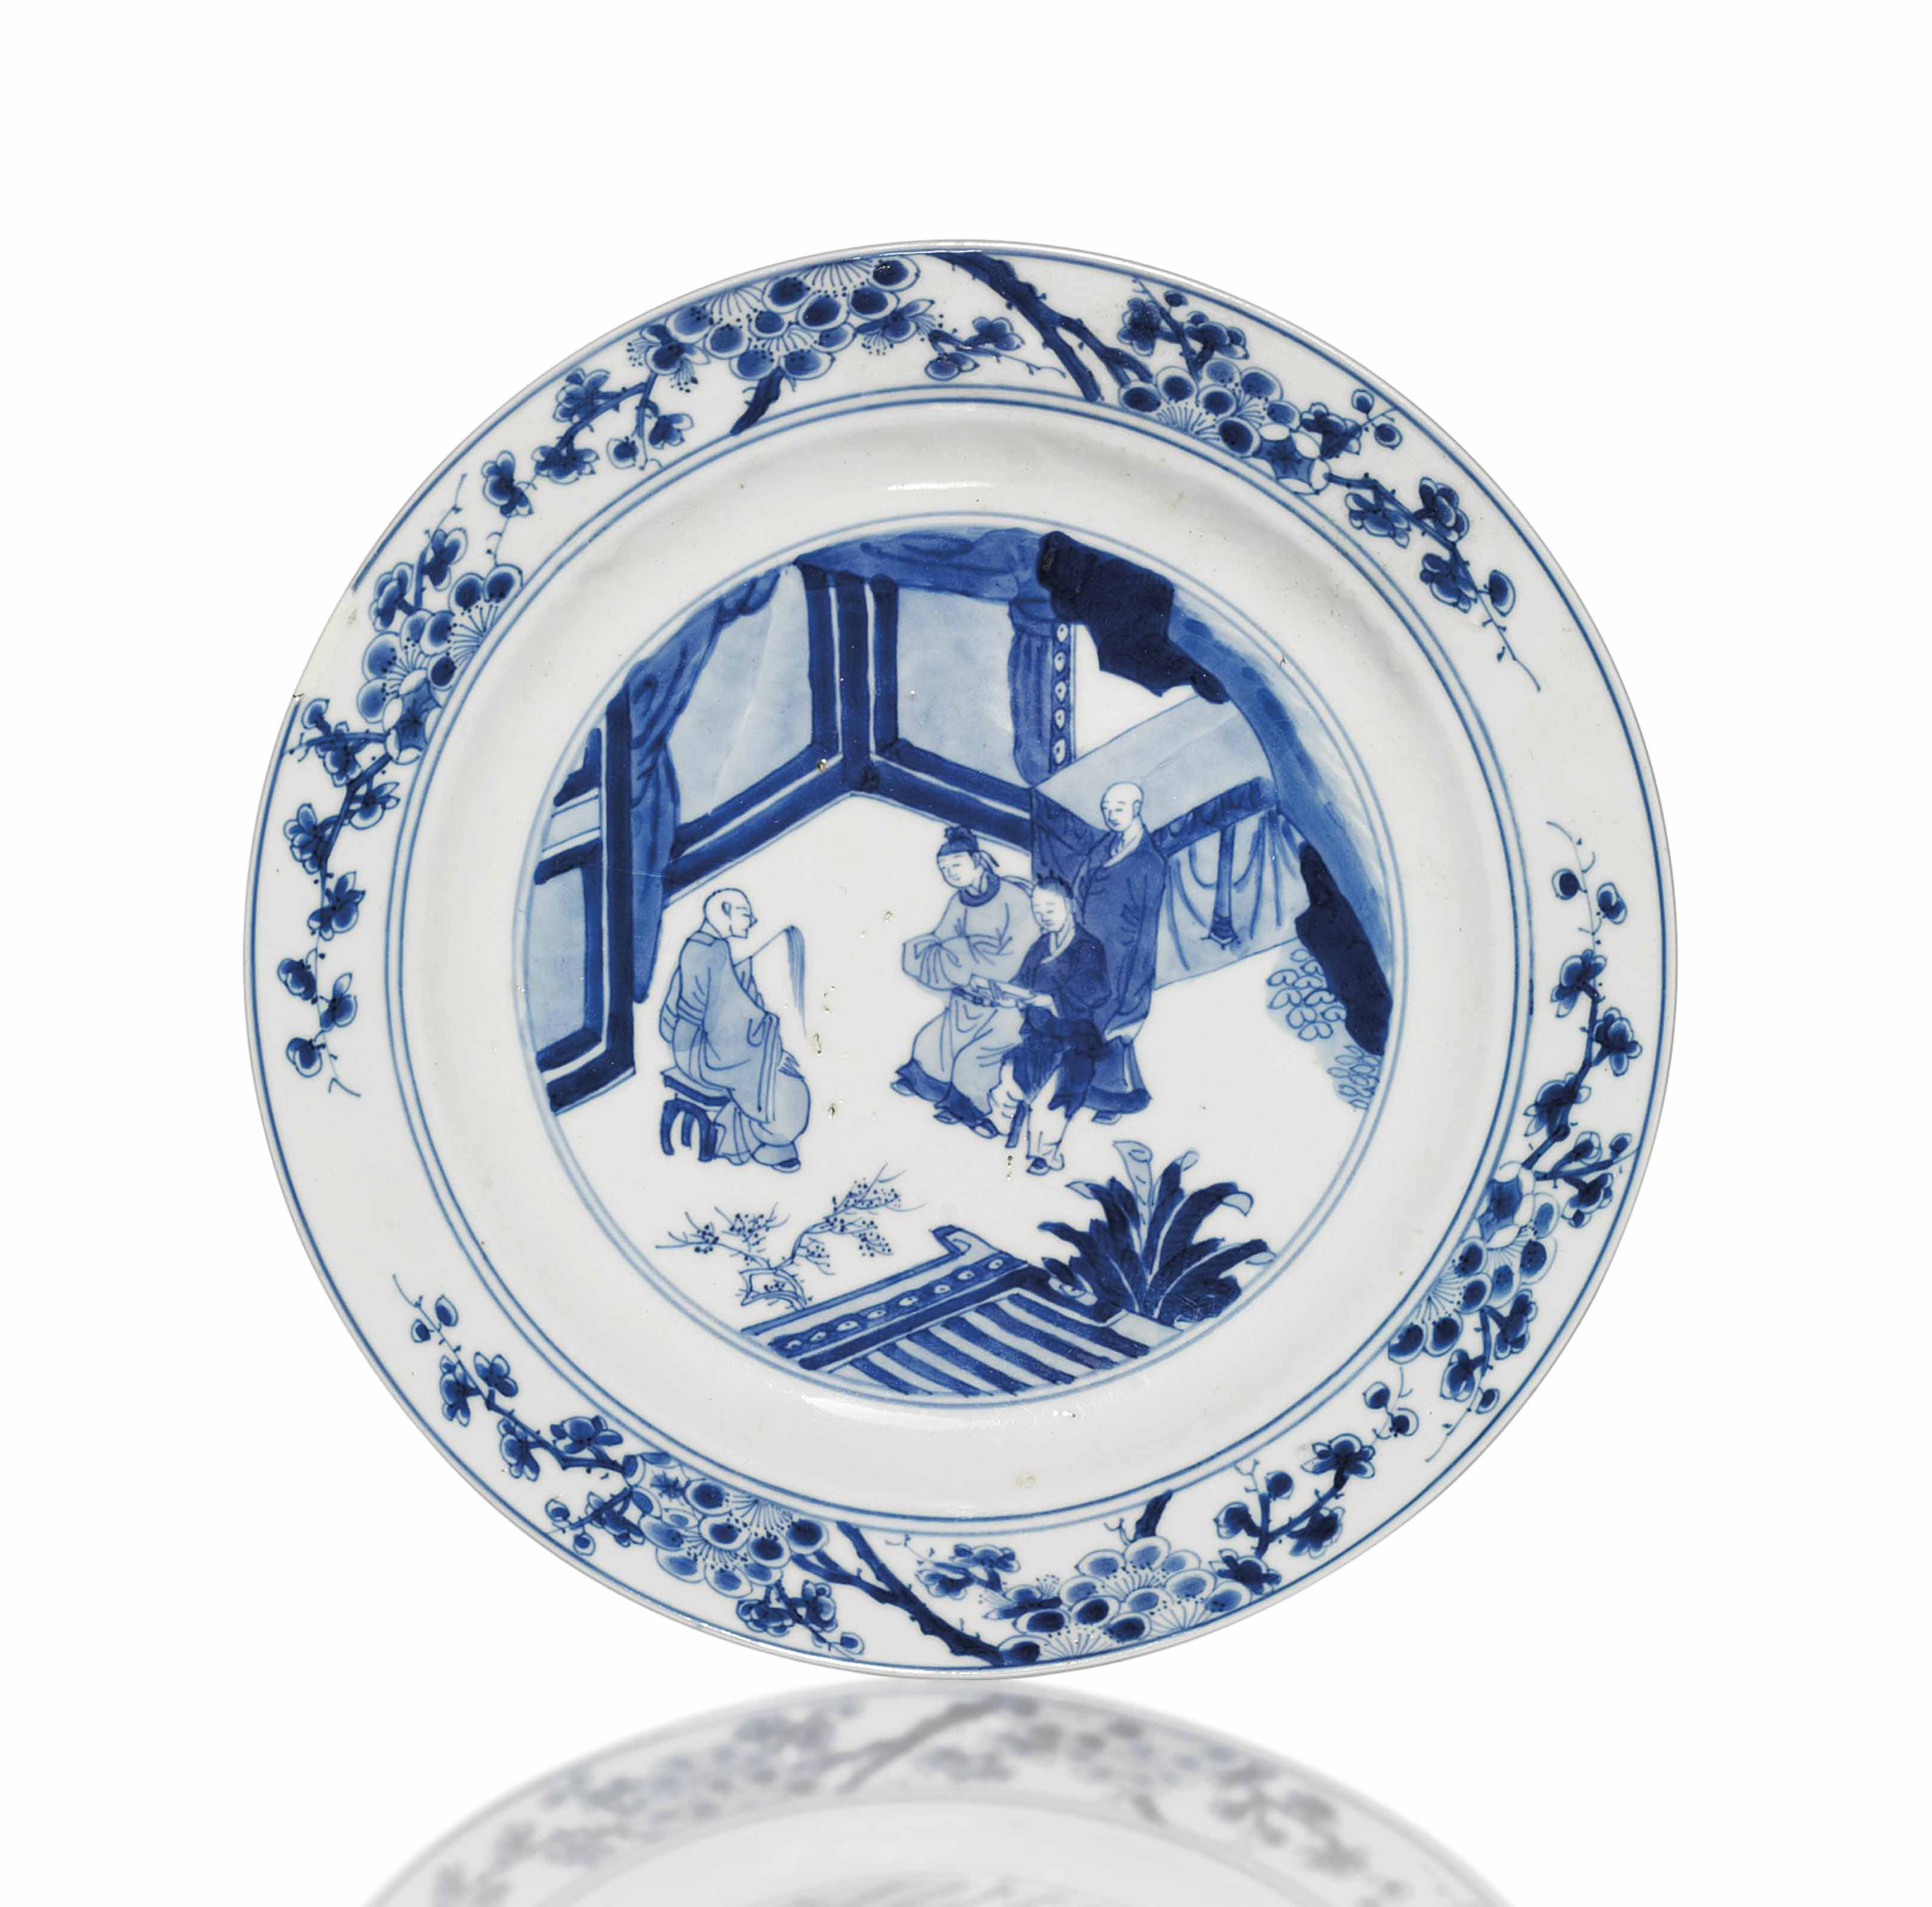 A BLUE AND WHITE XIXIANGJI DIS